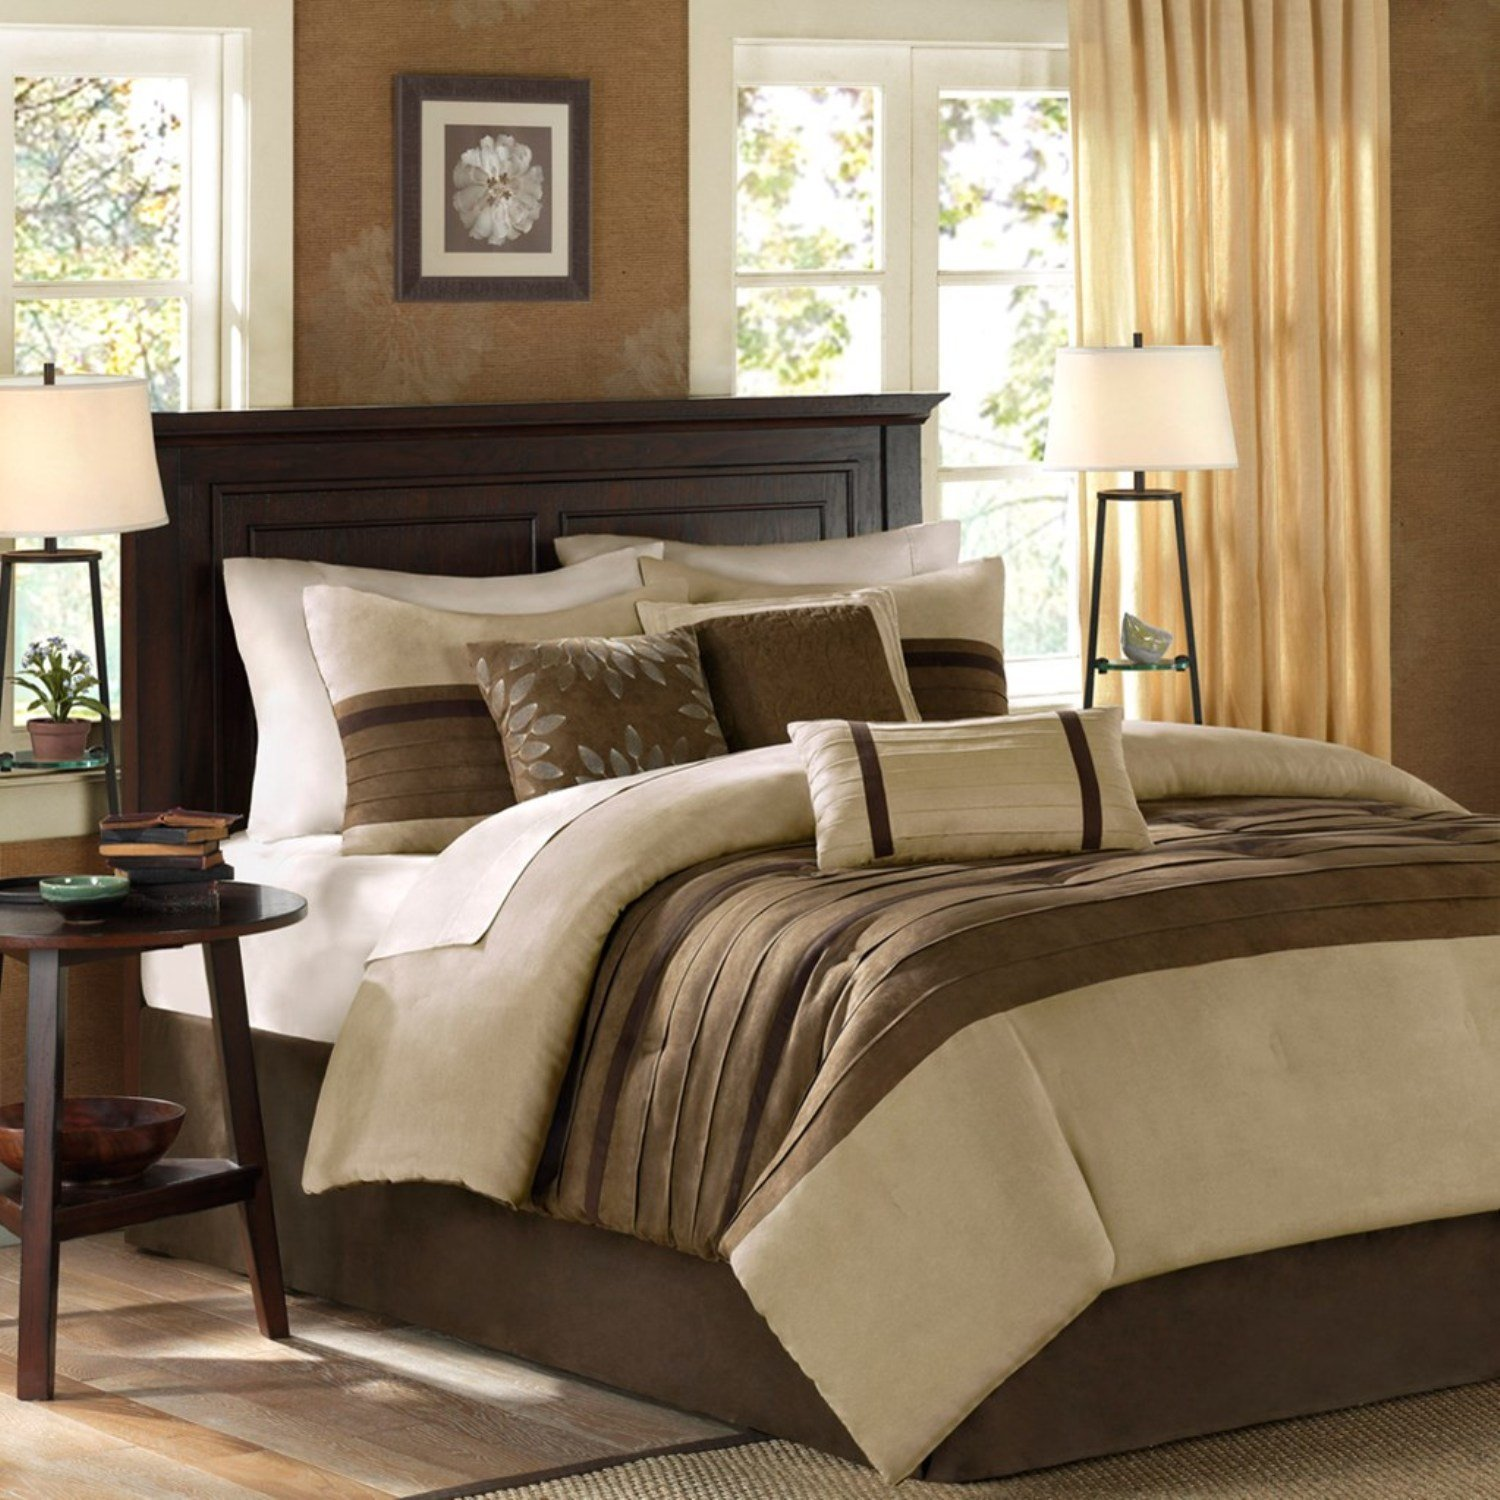 pintuck comforter sets sale ease bedding with style 7 piece comforter set color natural size king